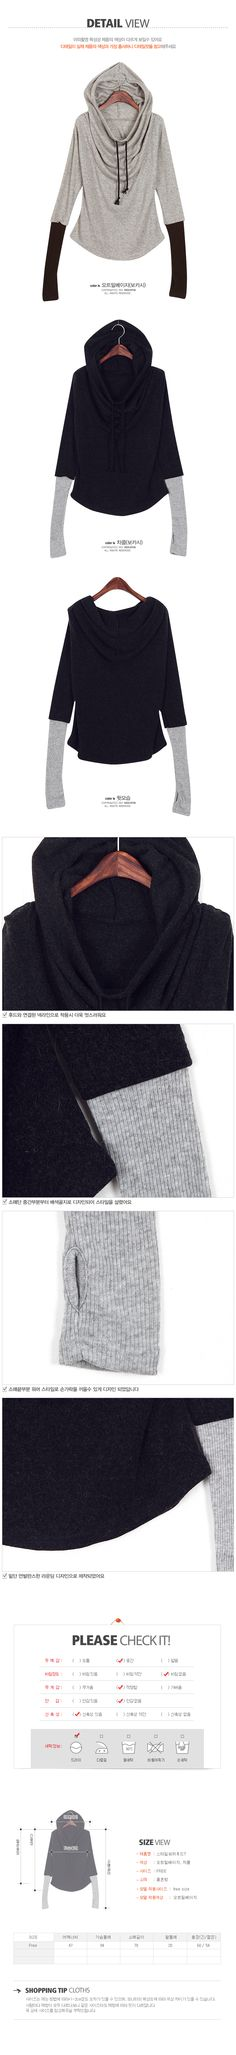 Love the cowl neck draping of the hood, with the color-accent thumbhole sleeves